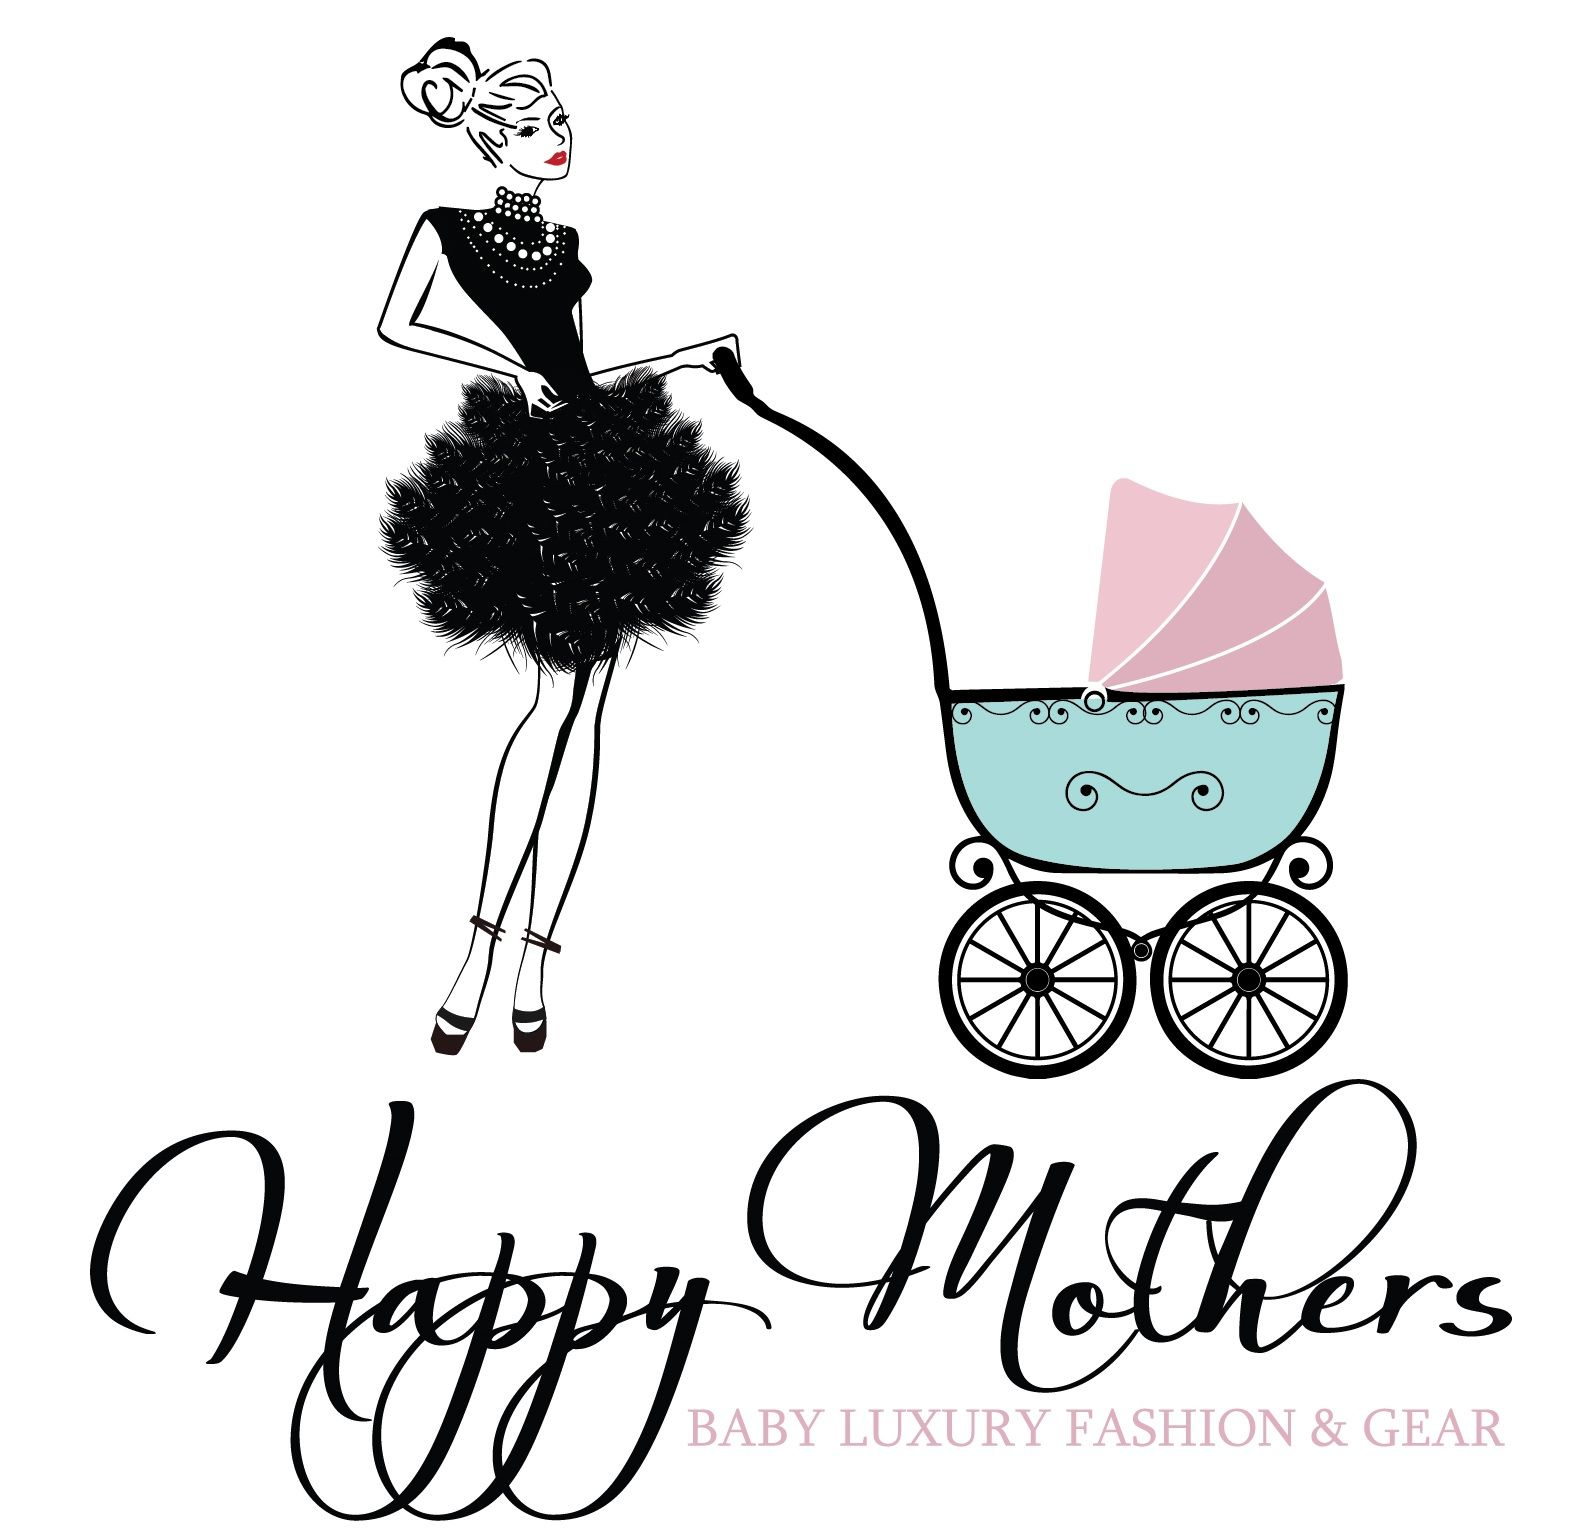 Happy Mothers Boutique: 360 Via Las Brisas, STE 140, Newbury Park, CA